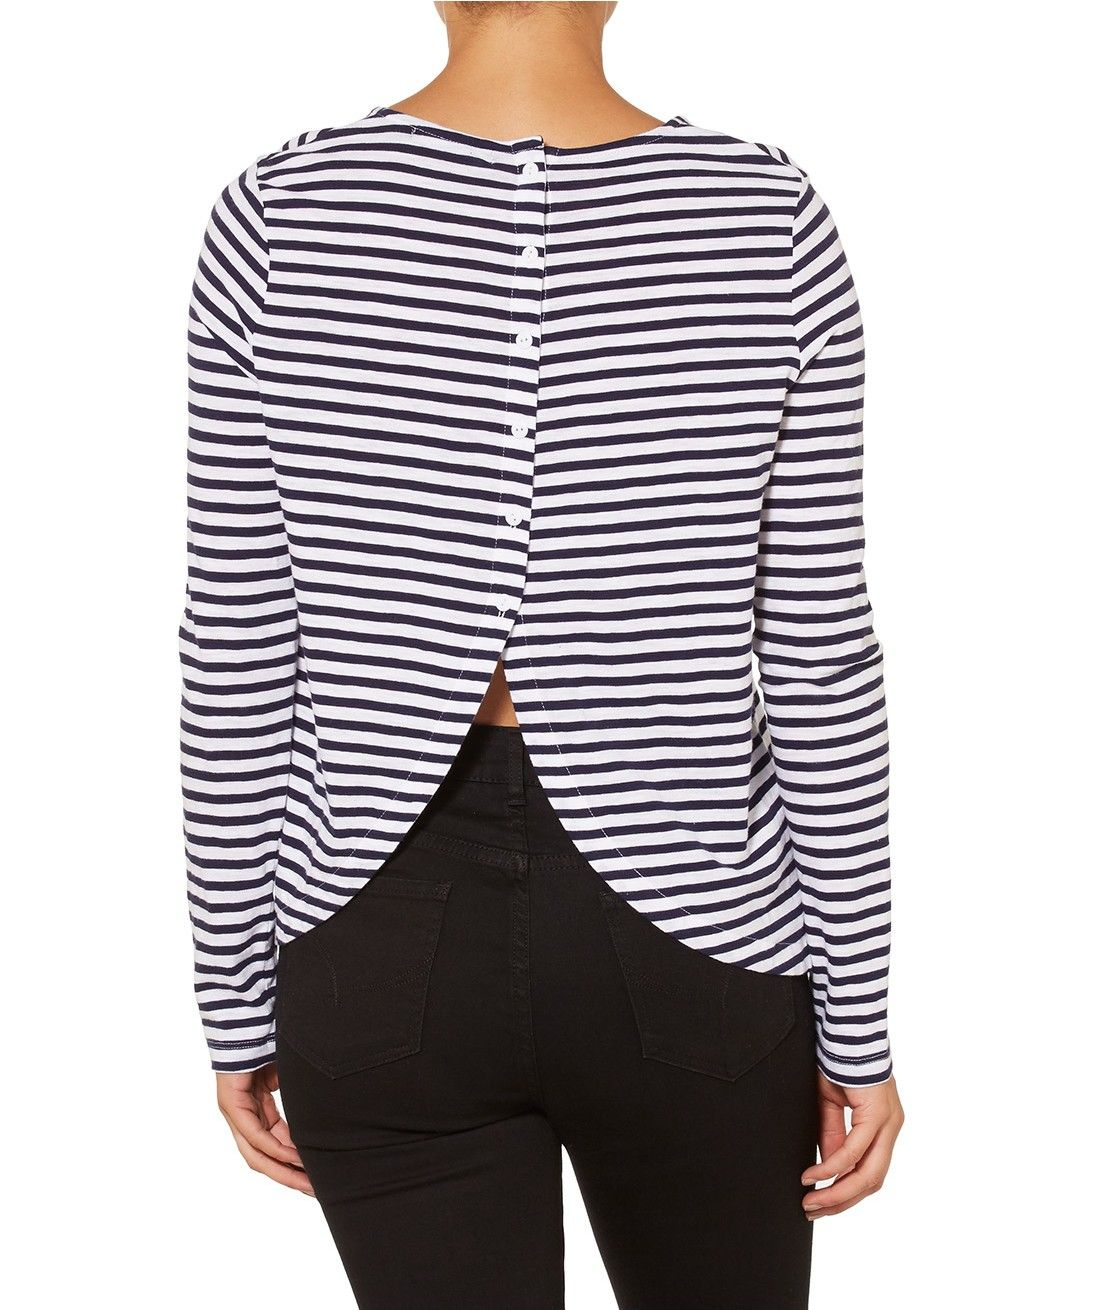 The Simplicity Of The Button Back Long Sleeve Top Will Have You